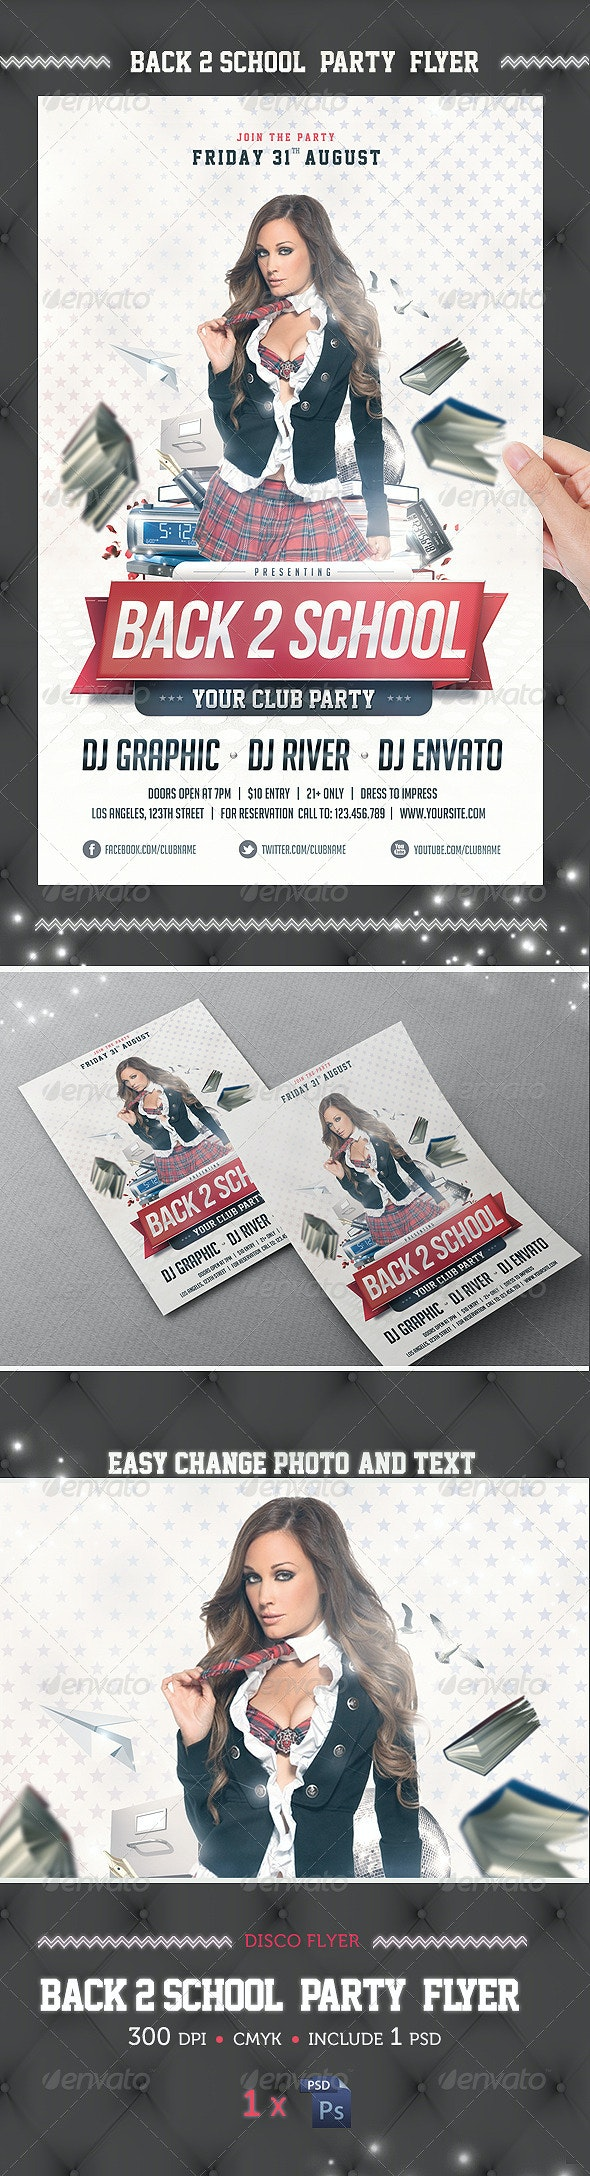 Back 2 School Party Flyer Template - Events Flyers